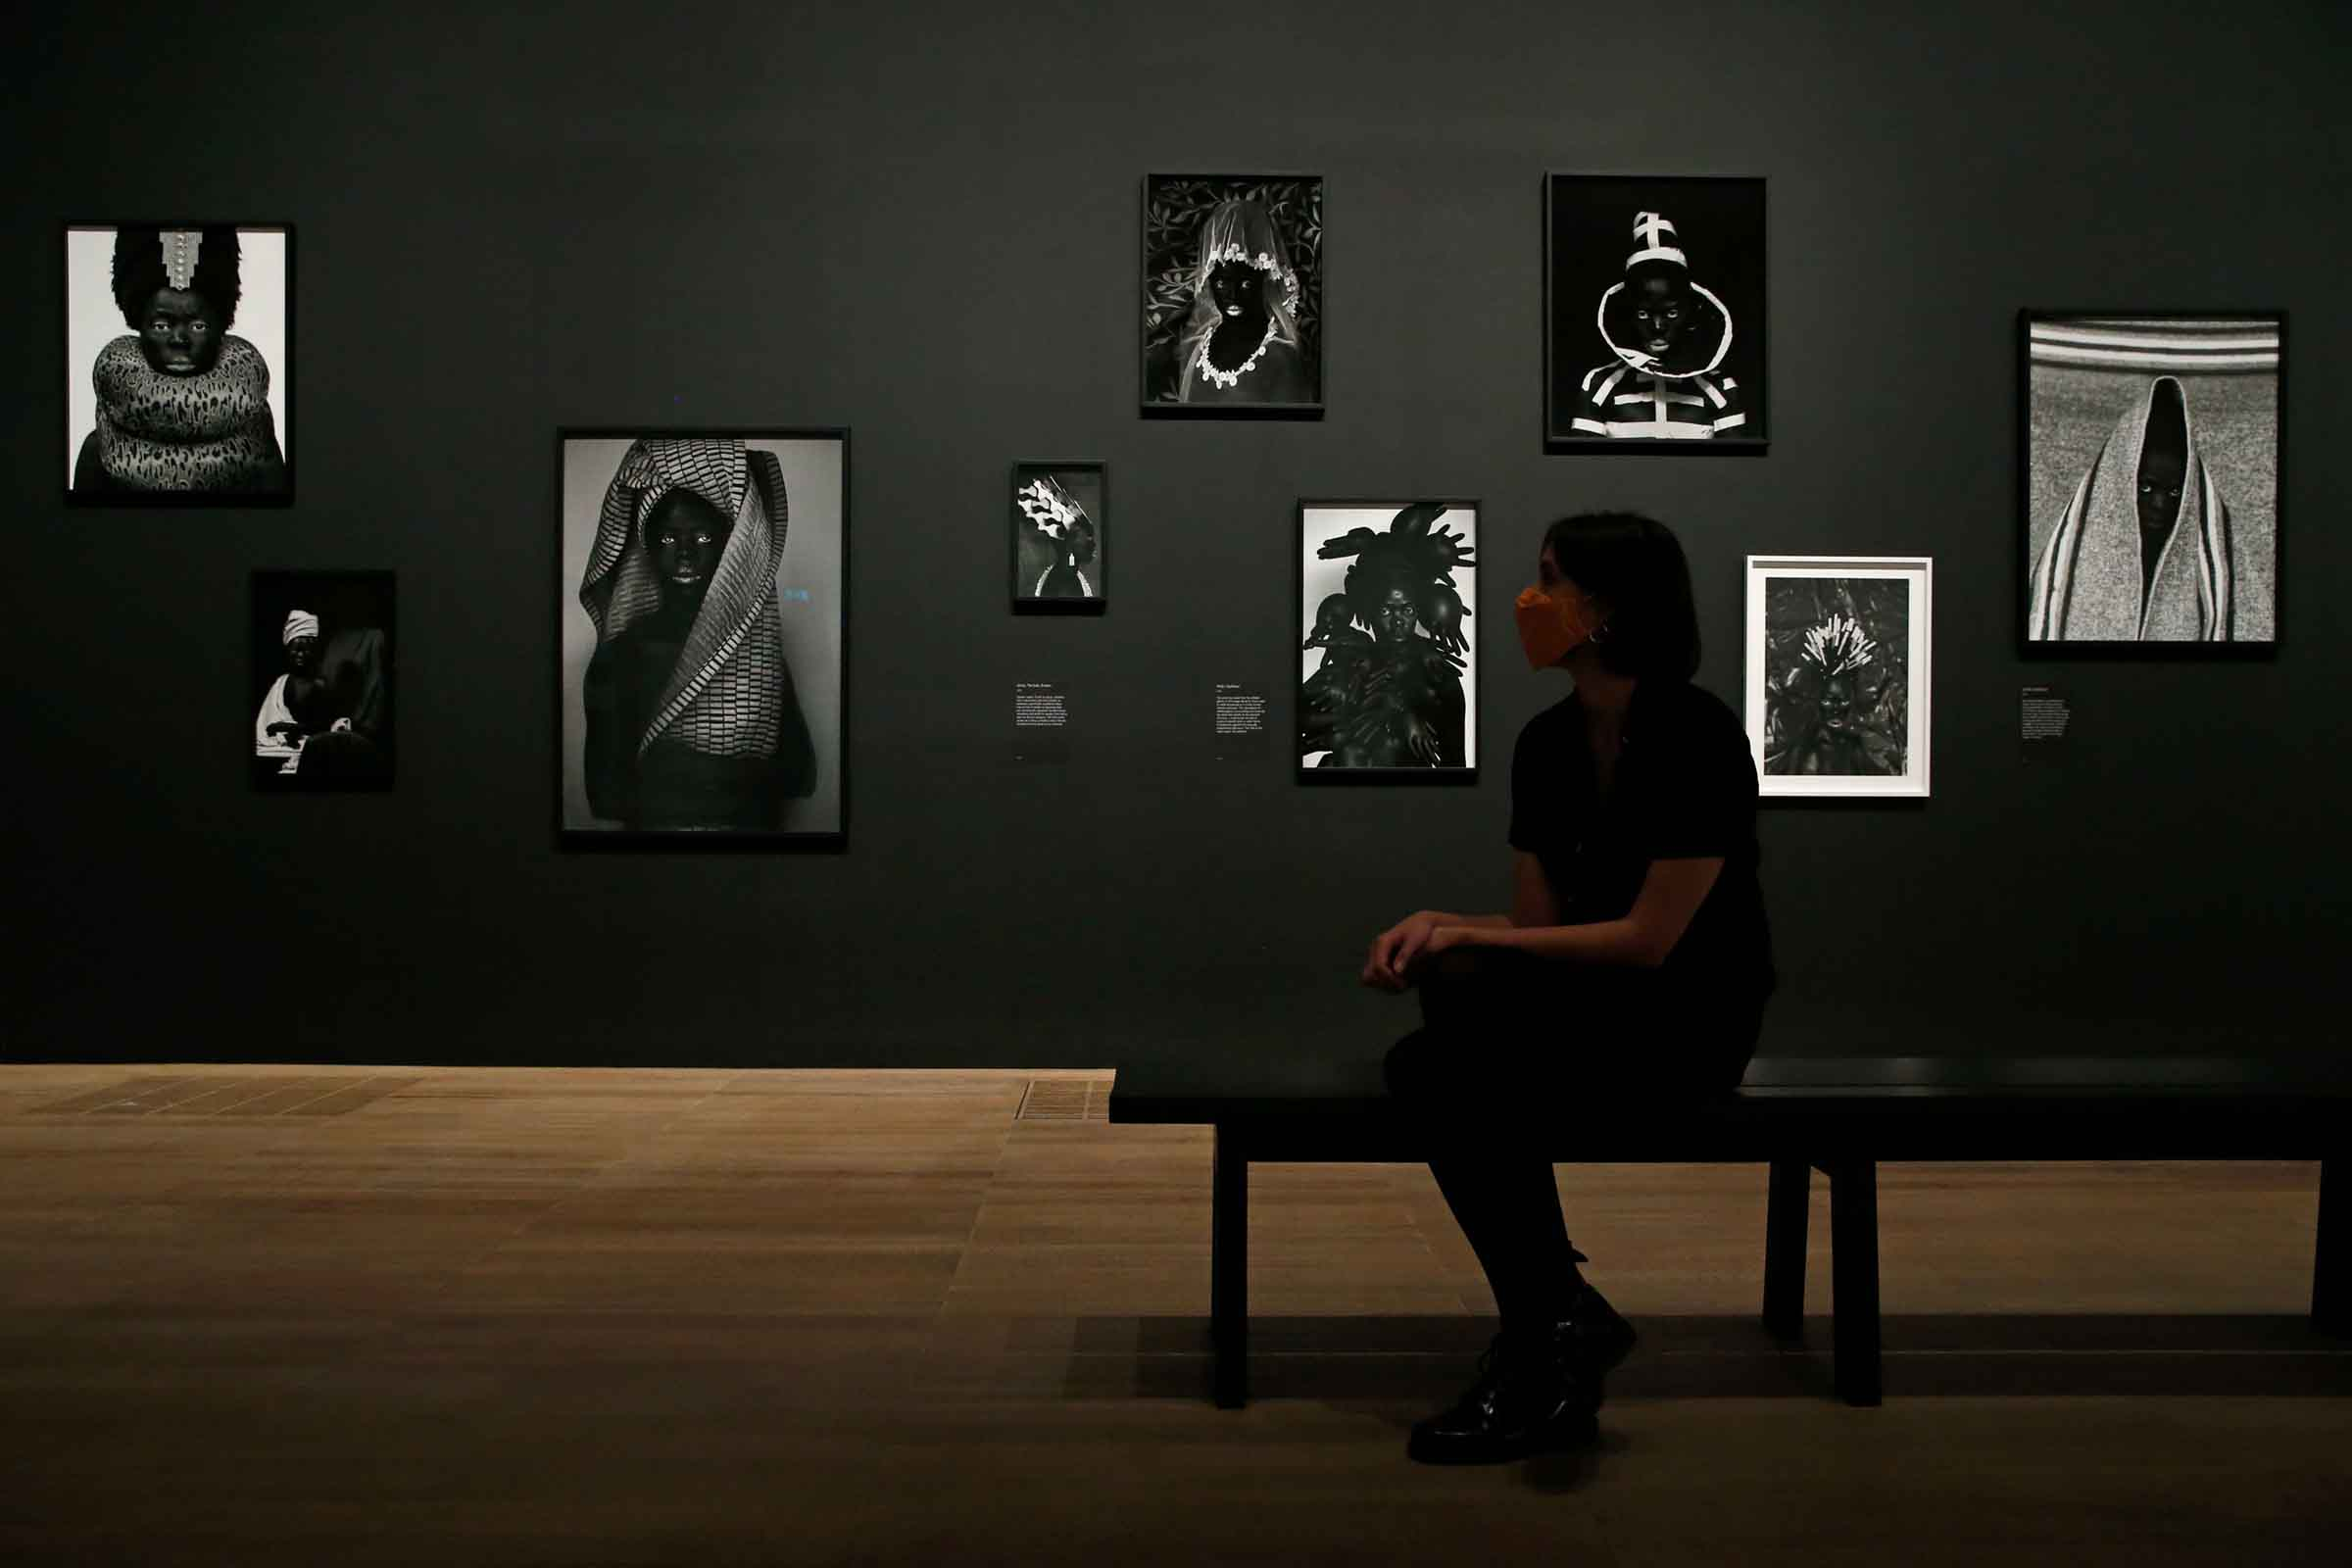 A Tate visitor poses in front of self portrait photographs from an on-going series entitled 'Somnyama Ngonyama' by South African visual activist Zanele Muholi in London on Nov. 3, 2020.